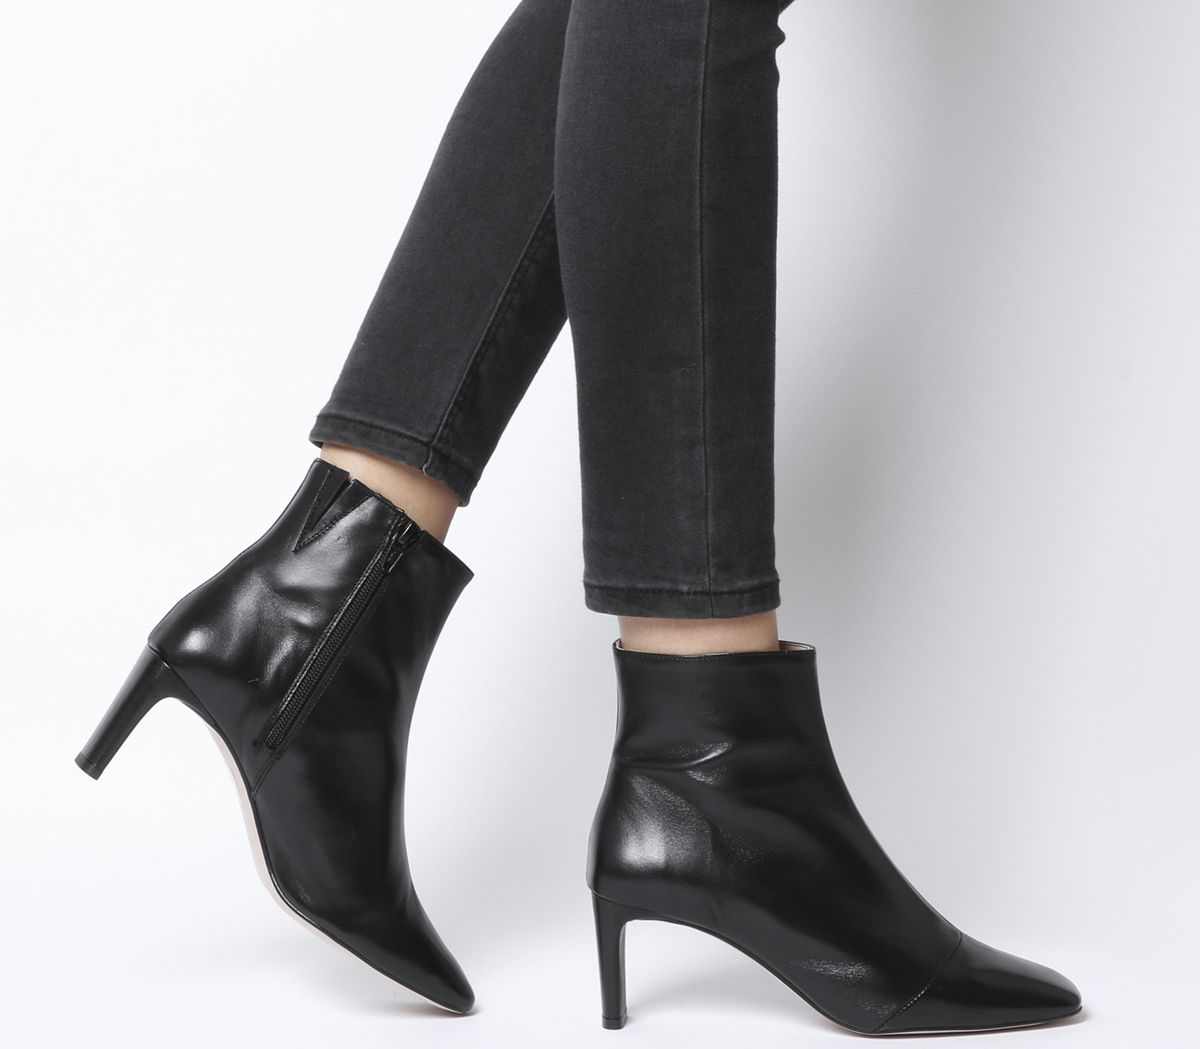 0d9f79226ac Adverse Square Toe Low Heel Boots